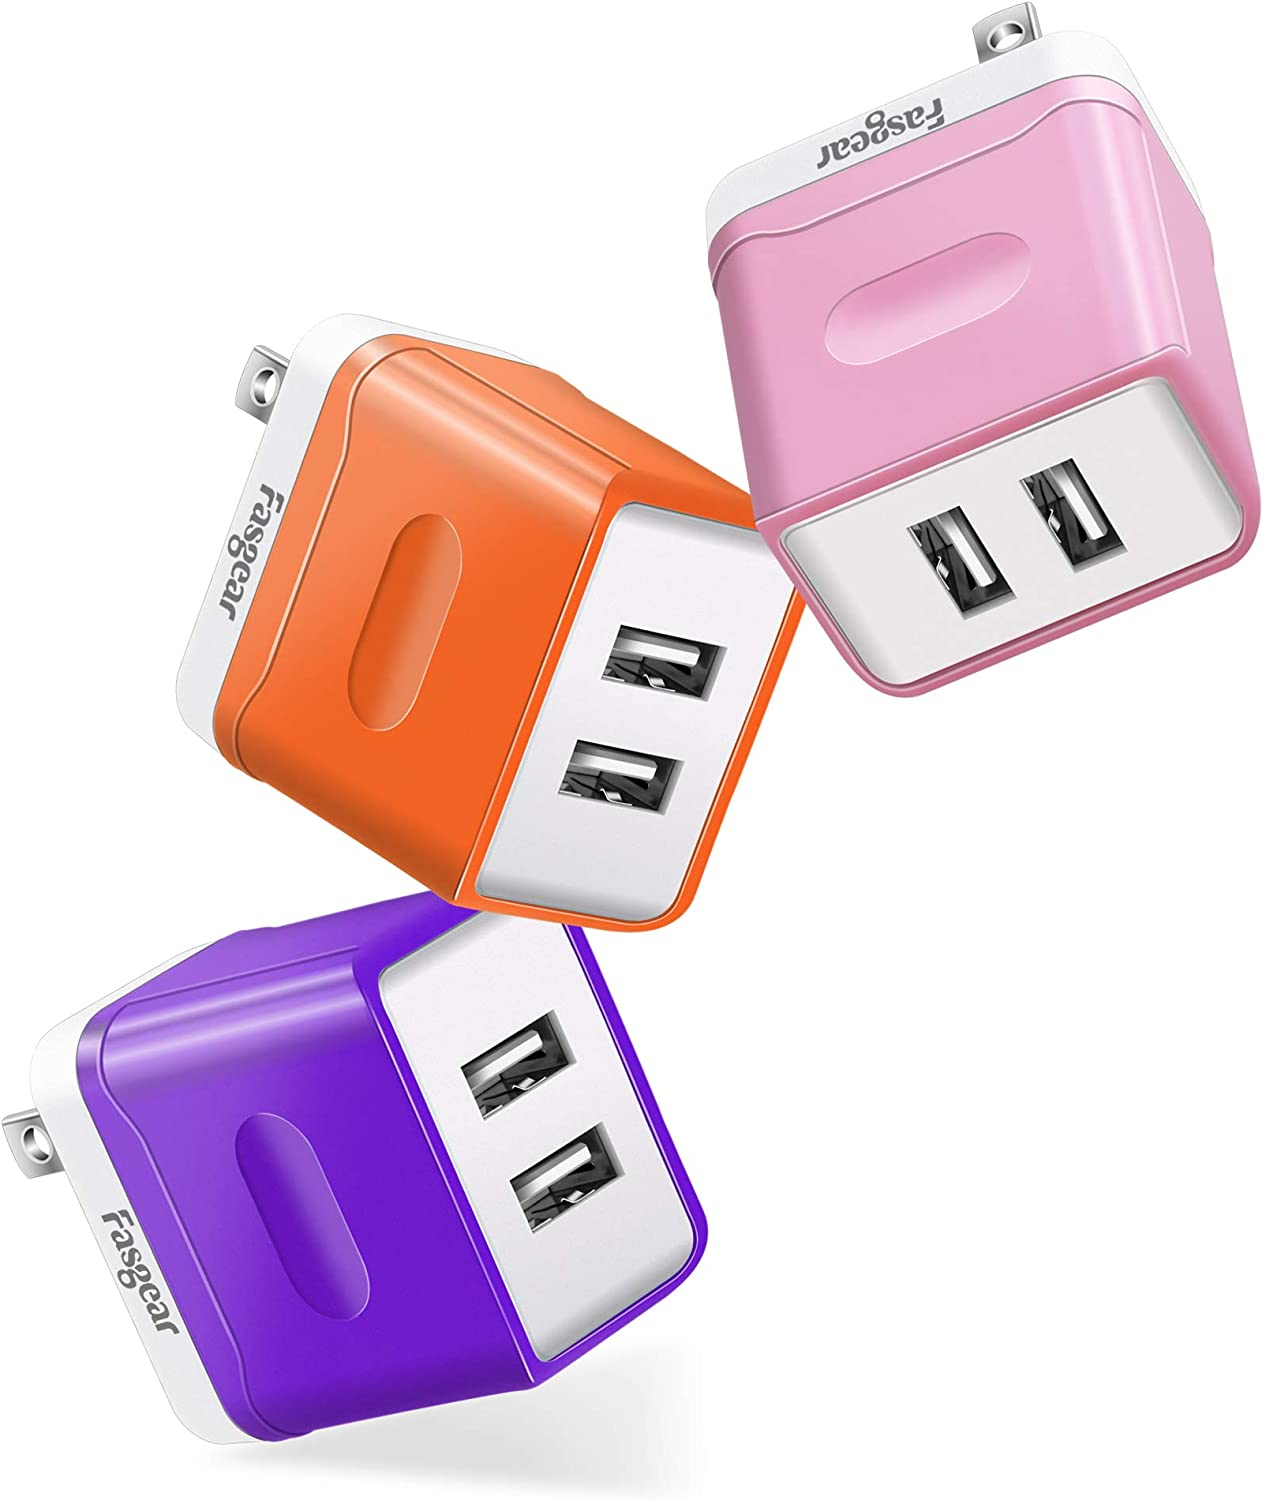 [3 Pack ] USB Wall Charger, Fasgear 15W Quick Charge Power Adapter Block,3 Amps Dual Port USB Charger Plug Compatible for iPhone X/XS, Galaxy S20+/S10/S9/Note 8 S7,Kindle, LG, HTC (Purple,Pink,Orange)